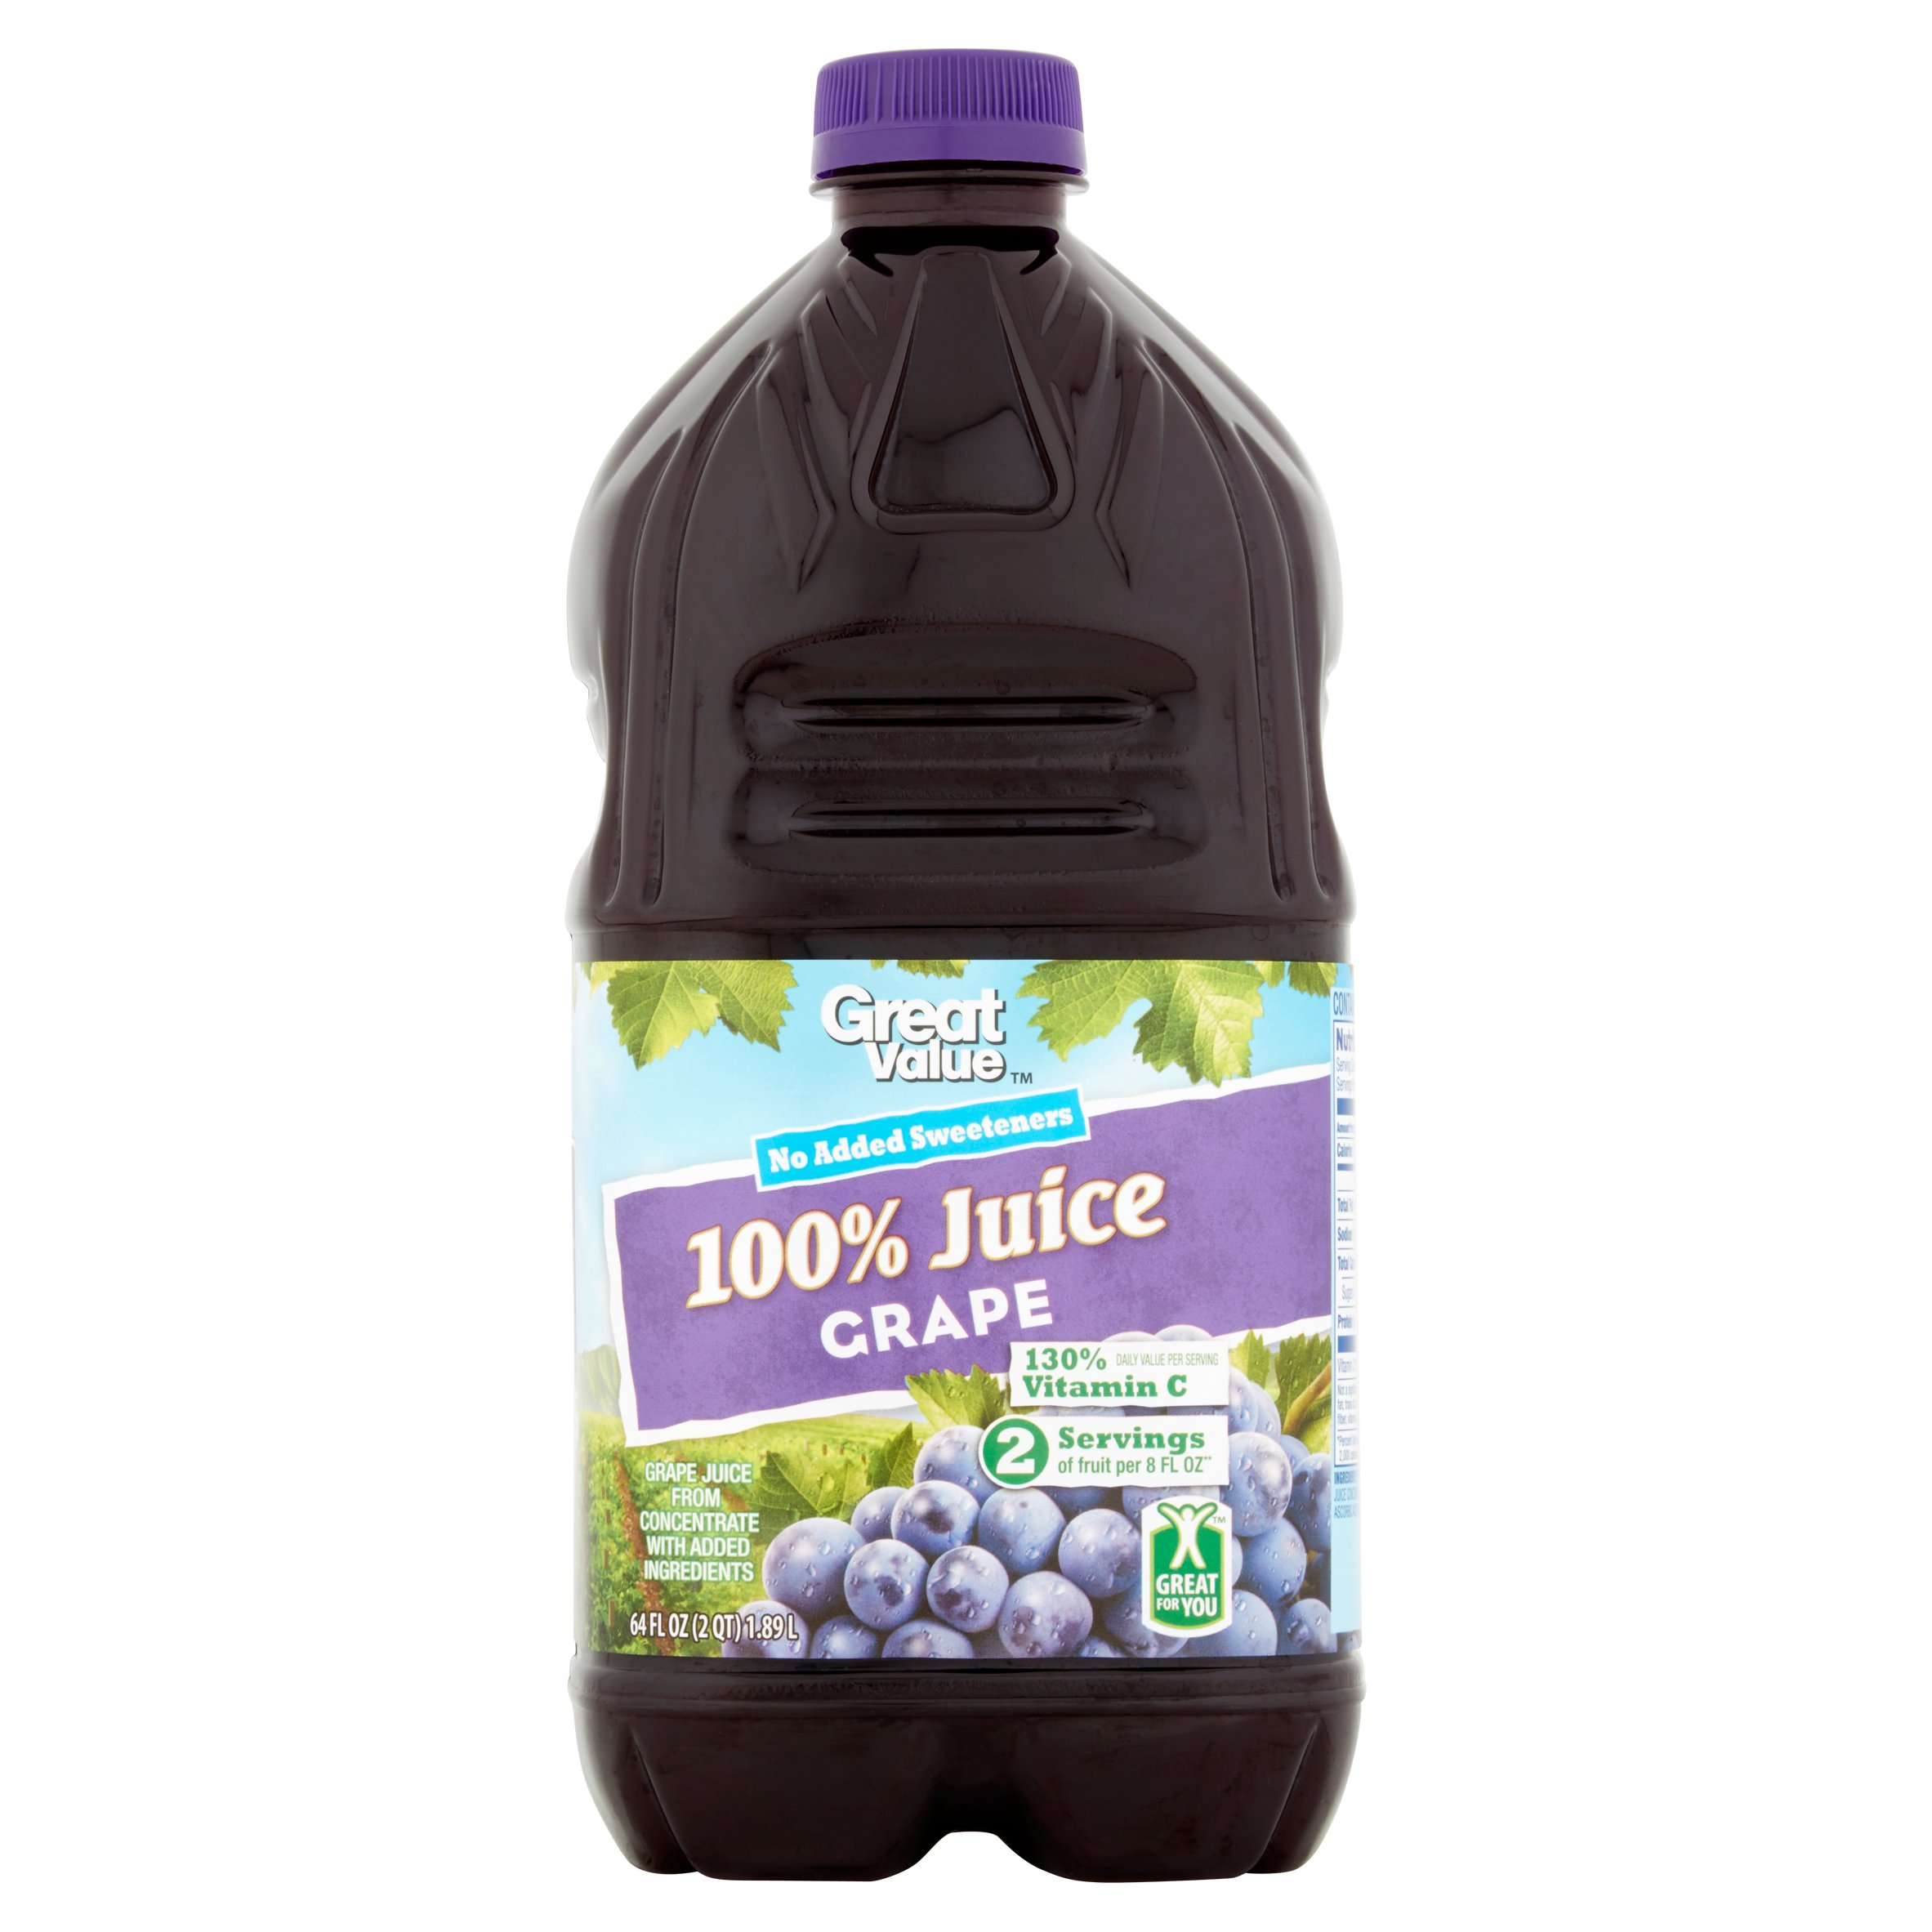 Great Value 100% Grape Juice, 64 Fl Oz by Wal-Mart Stores, Inc.